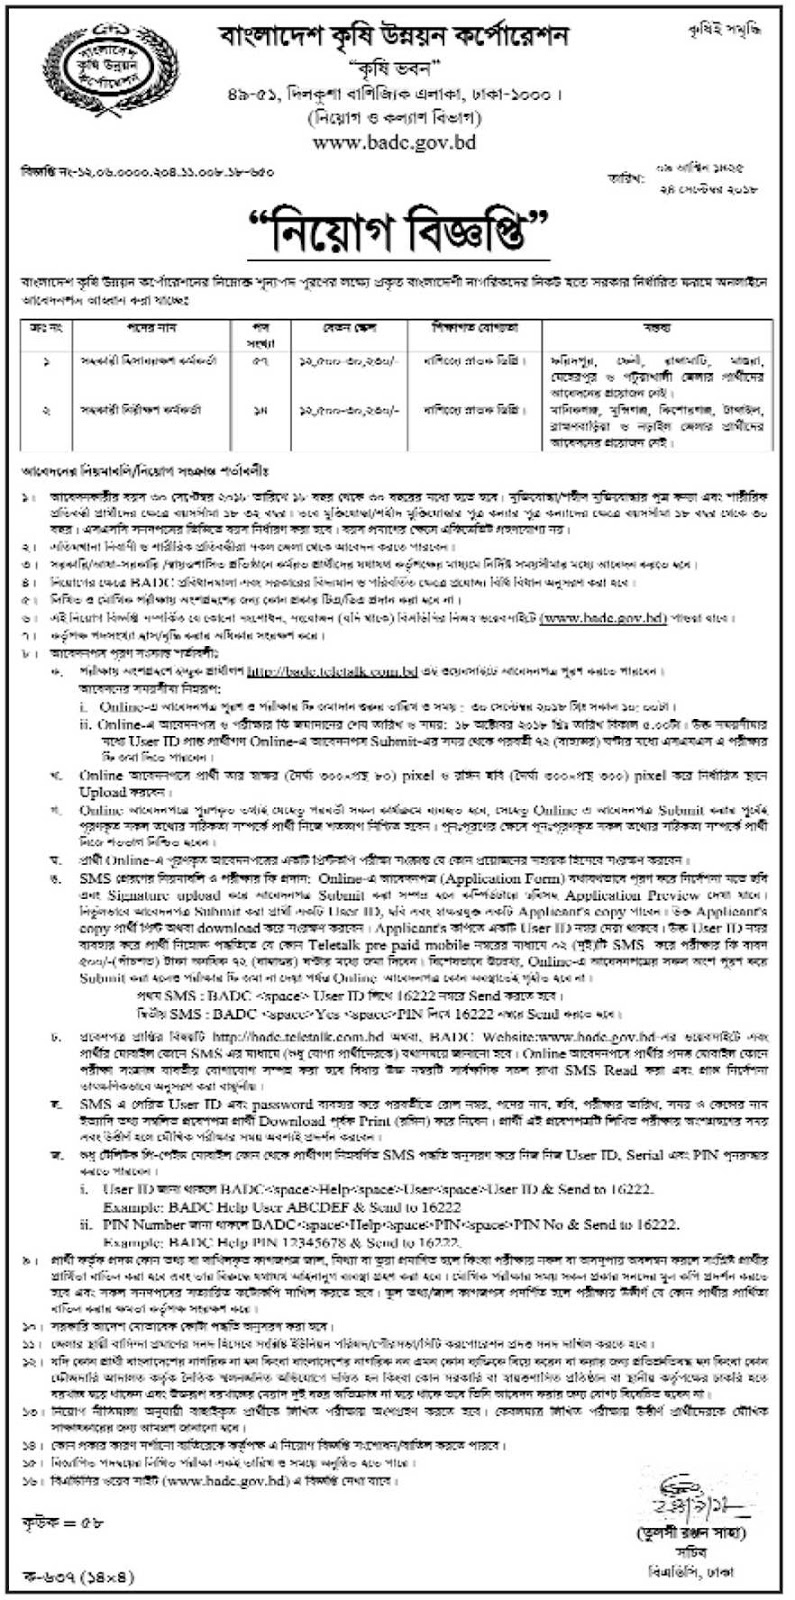 Bangladesh Agricultural Development Corporation (BADC) Job Circular 2018